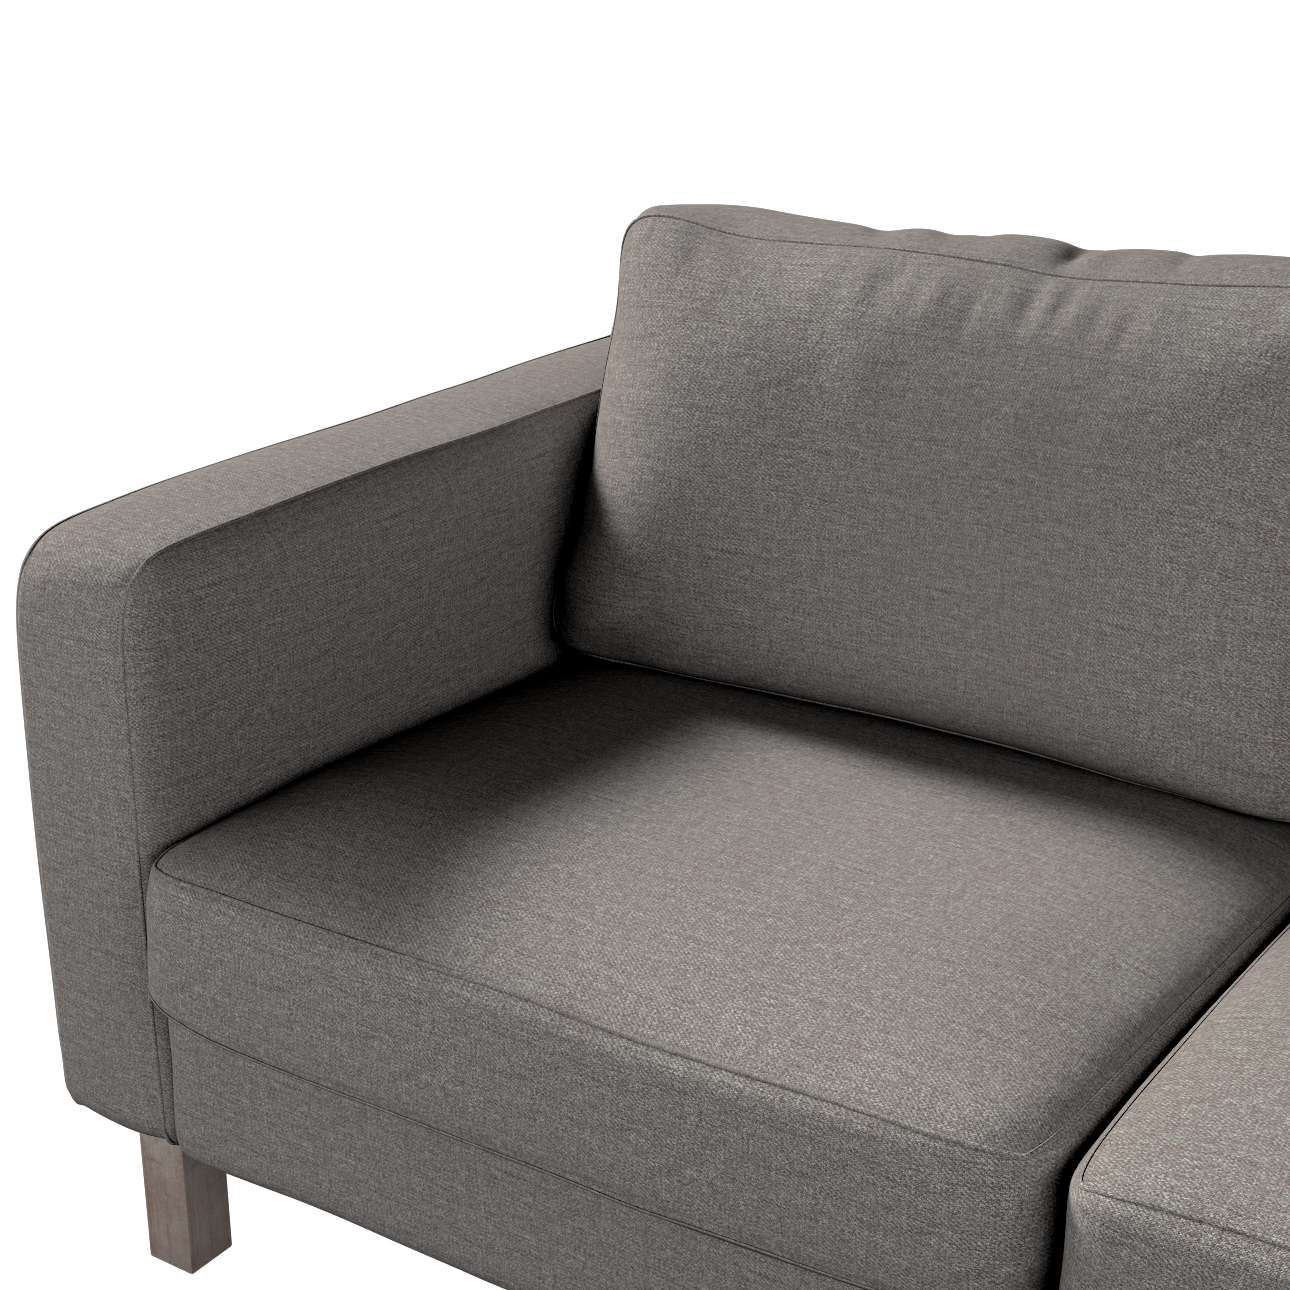 Karlstad 2-seater sofa cover in collection Edinburgh, fabric: 115-77